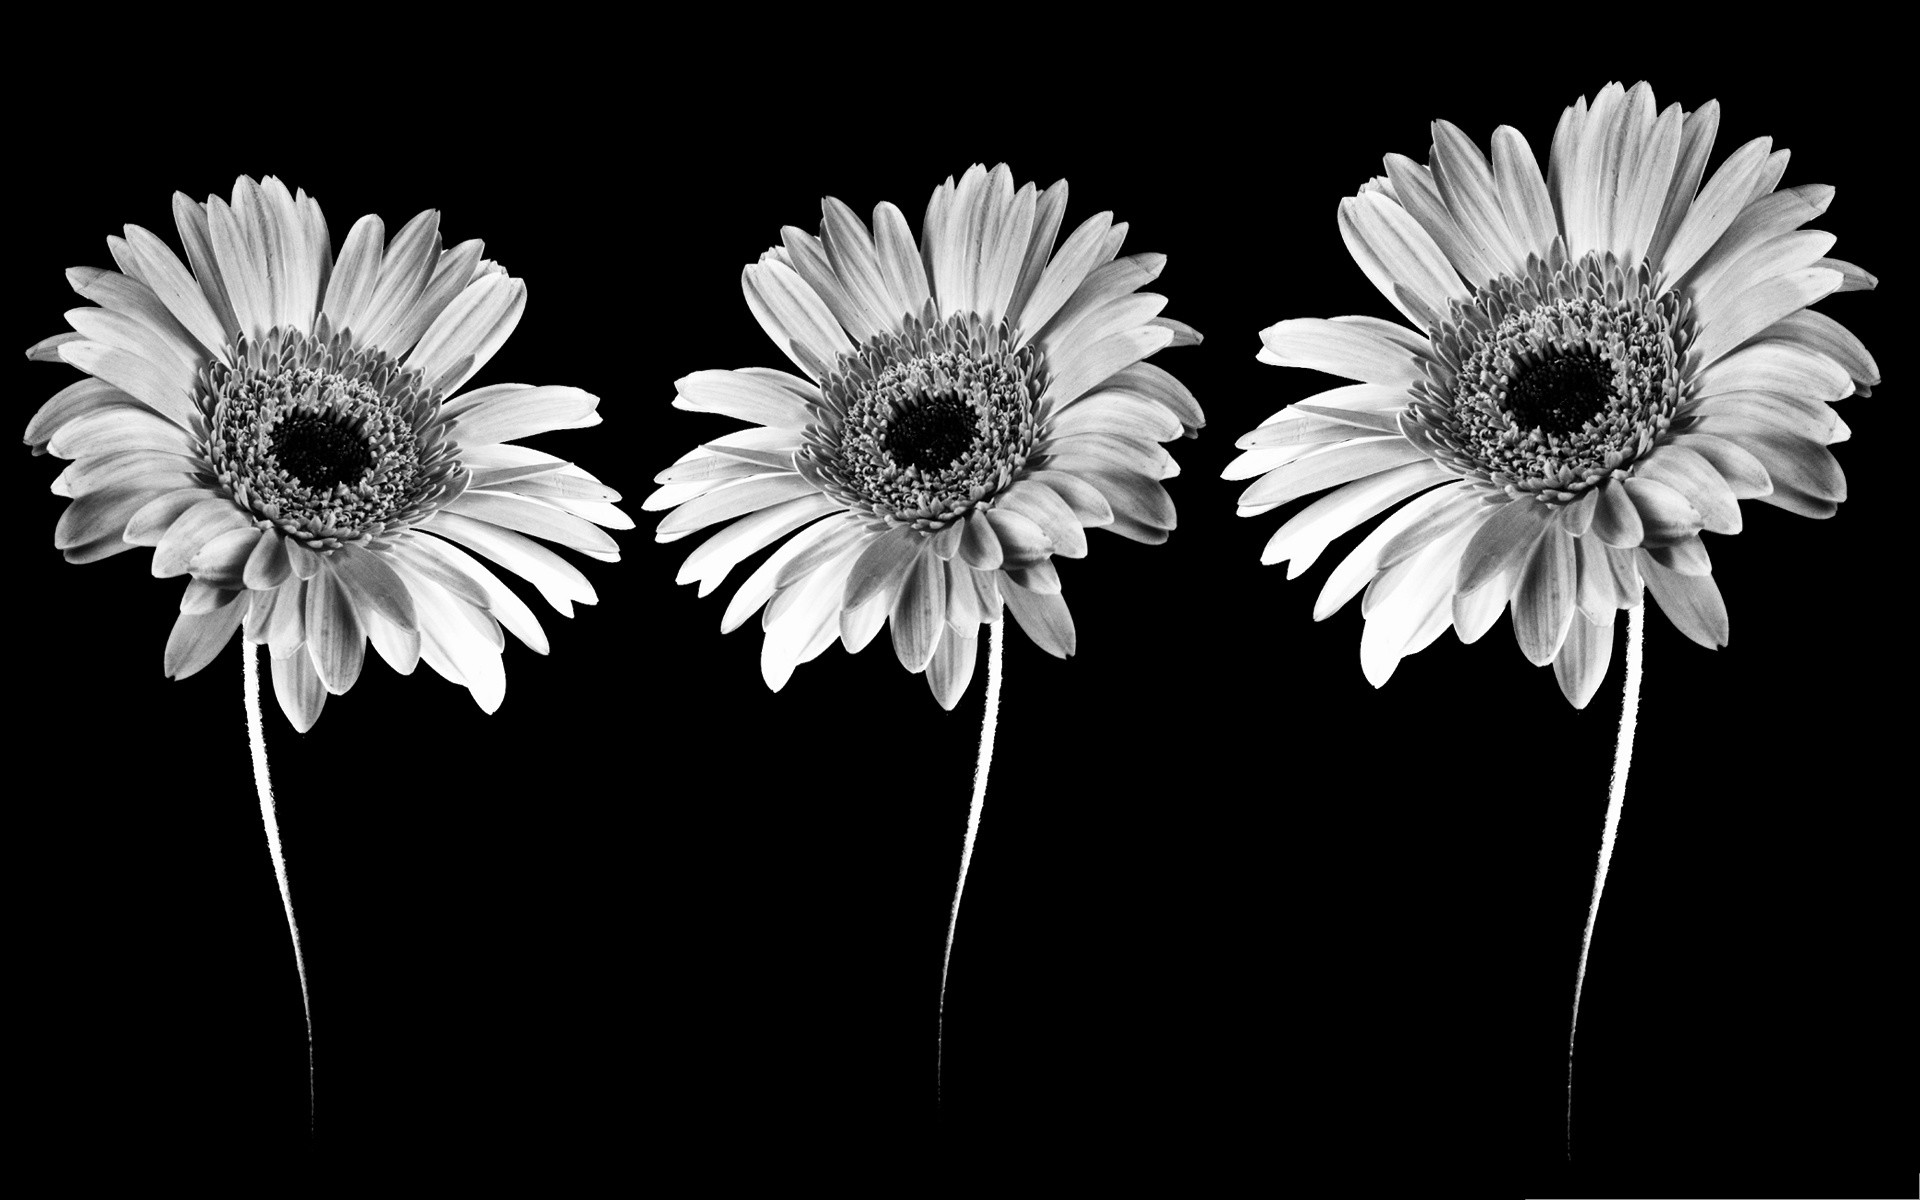 Black and white flower wallpaper 56 images 1920x1200 black white money flowers images wallpaper mightylinksfo